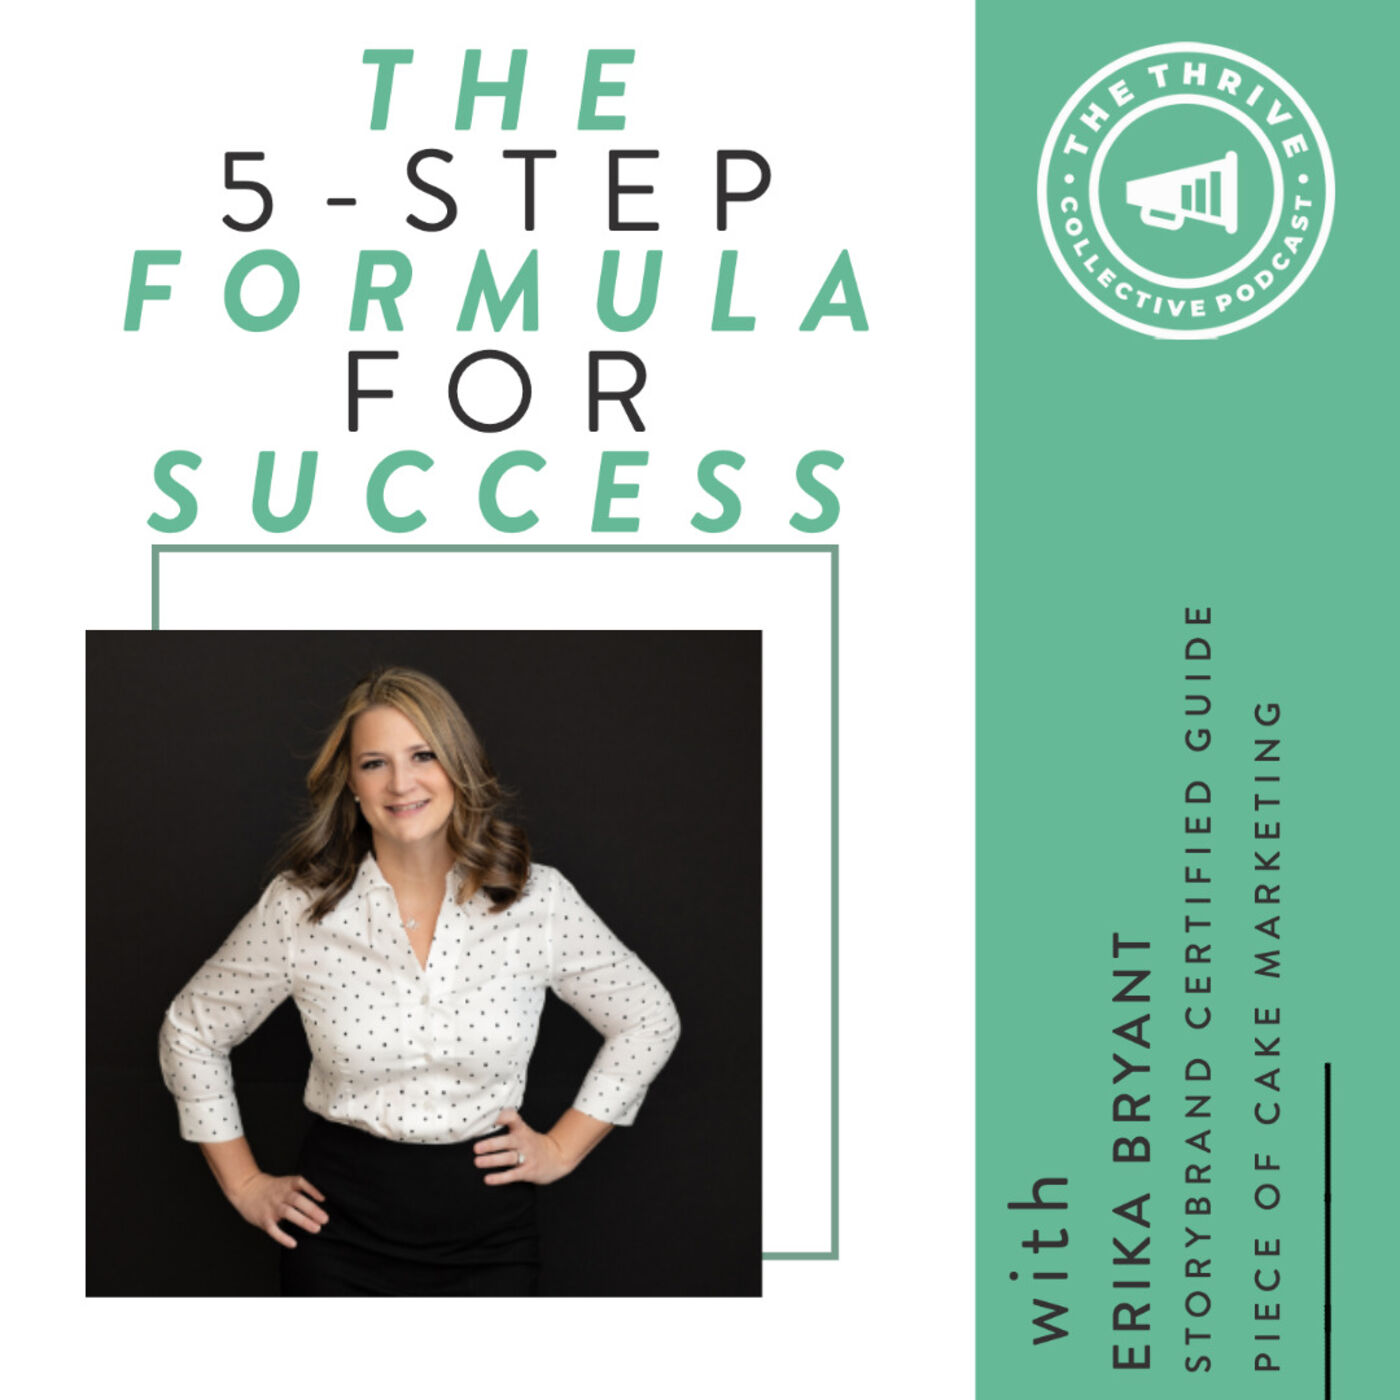 The 5-Step Formula for Success with Erika Bryant